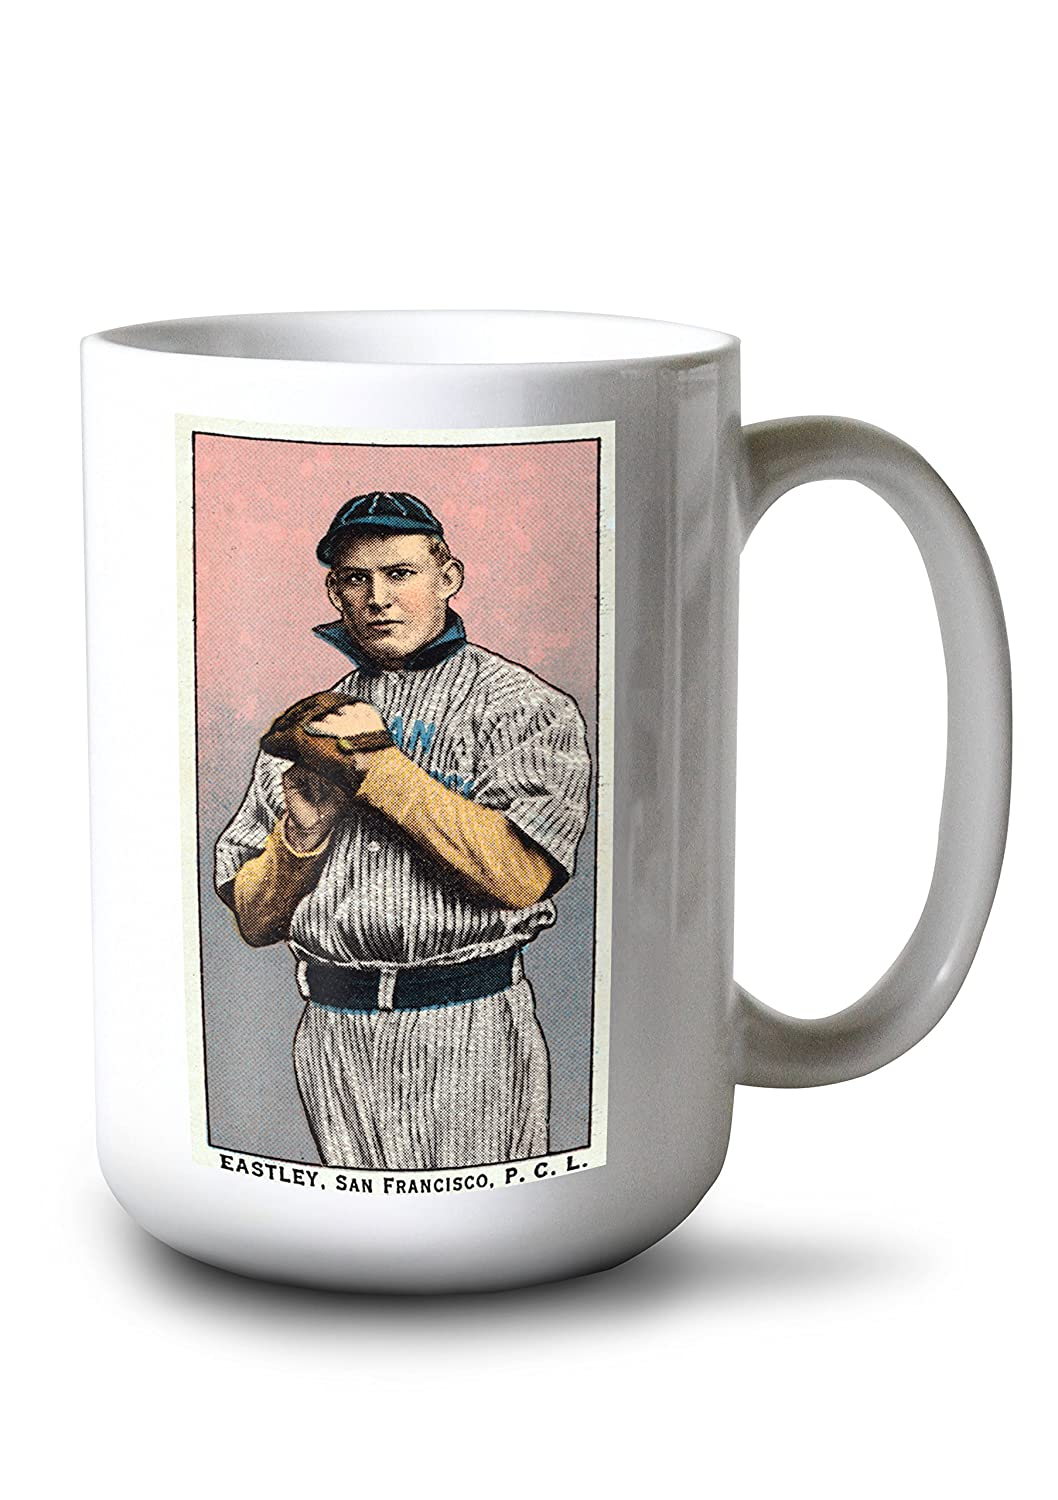 San Francisco Pacific Coast League – Eastley – 野球カード 15oz Mug LANT-3P-15OZ-WHT-23565 B077RS86V7  15oz Mug